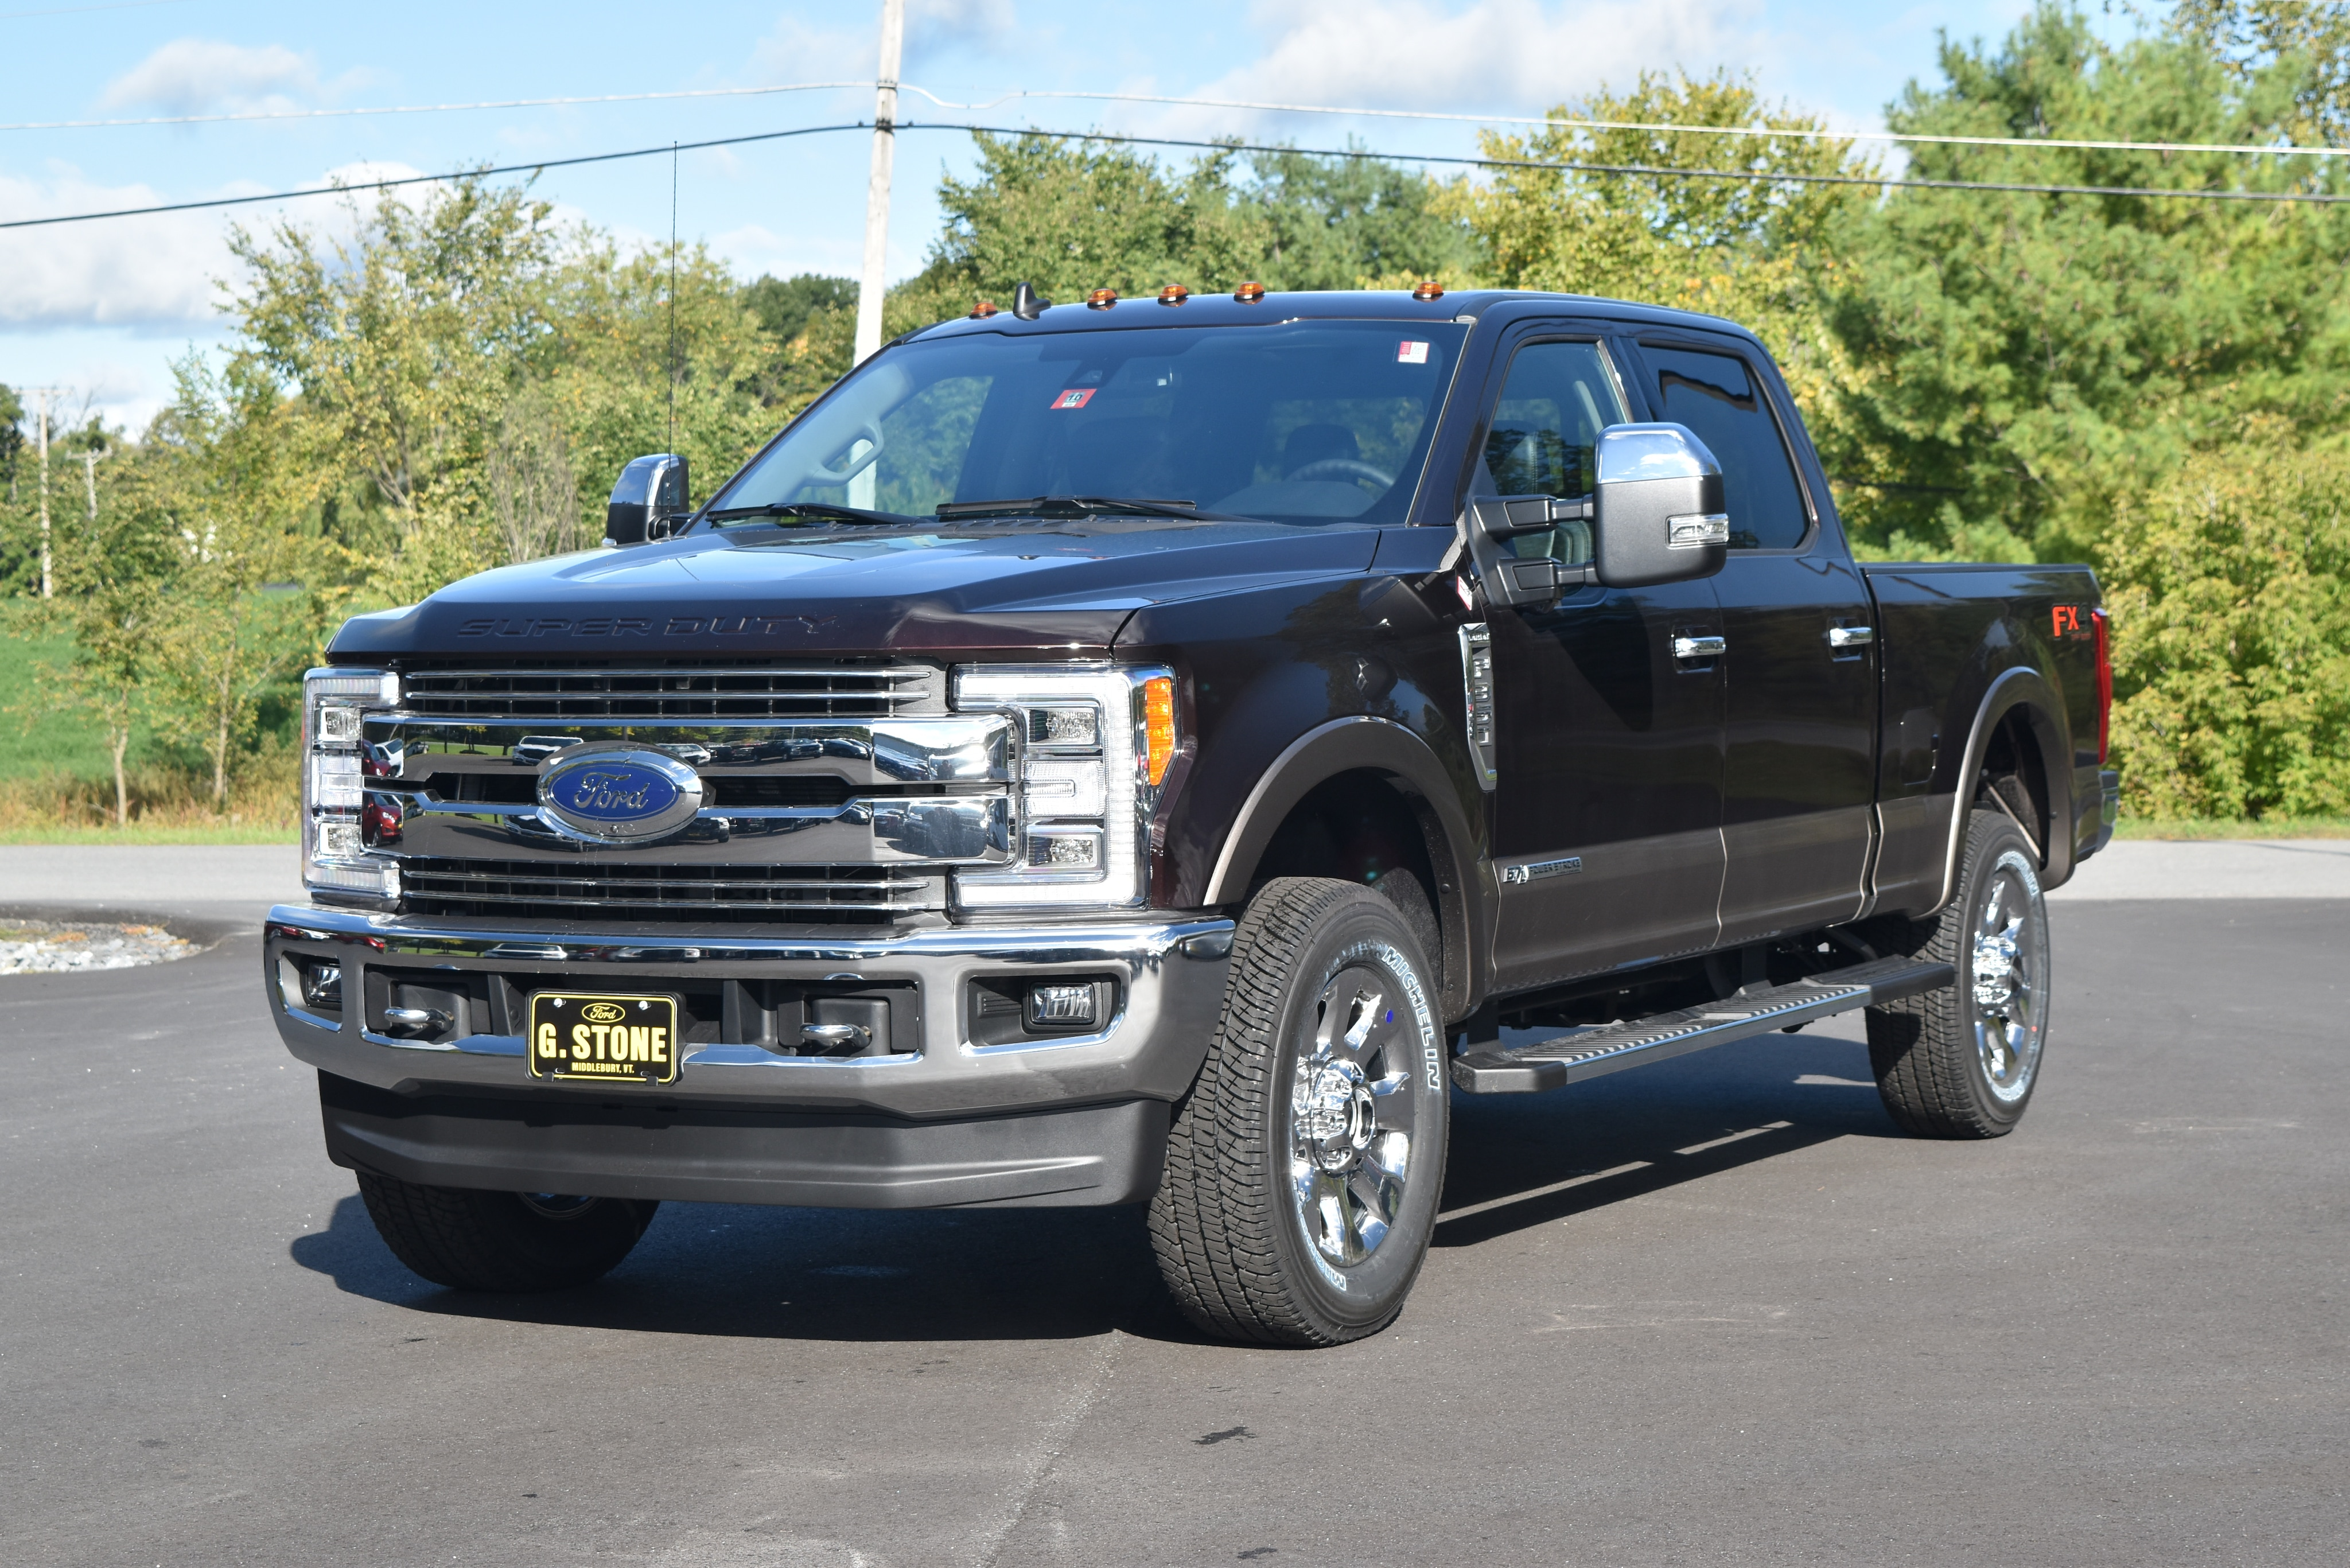 RPMWired.com car search / 2019 Ford F-350